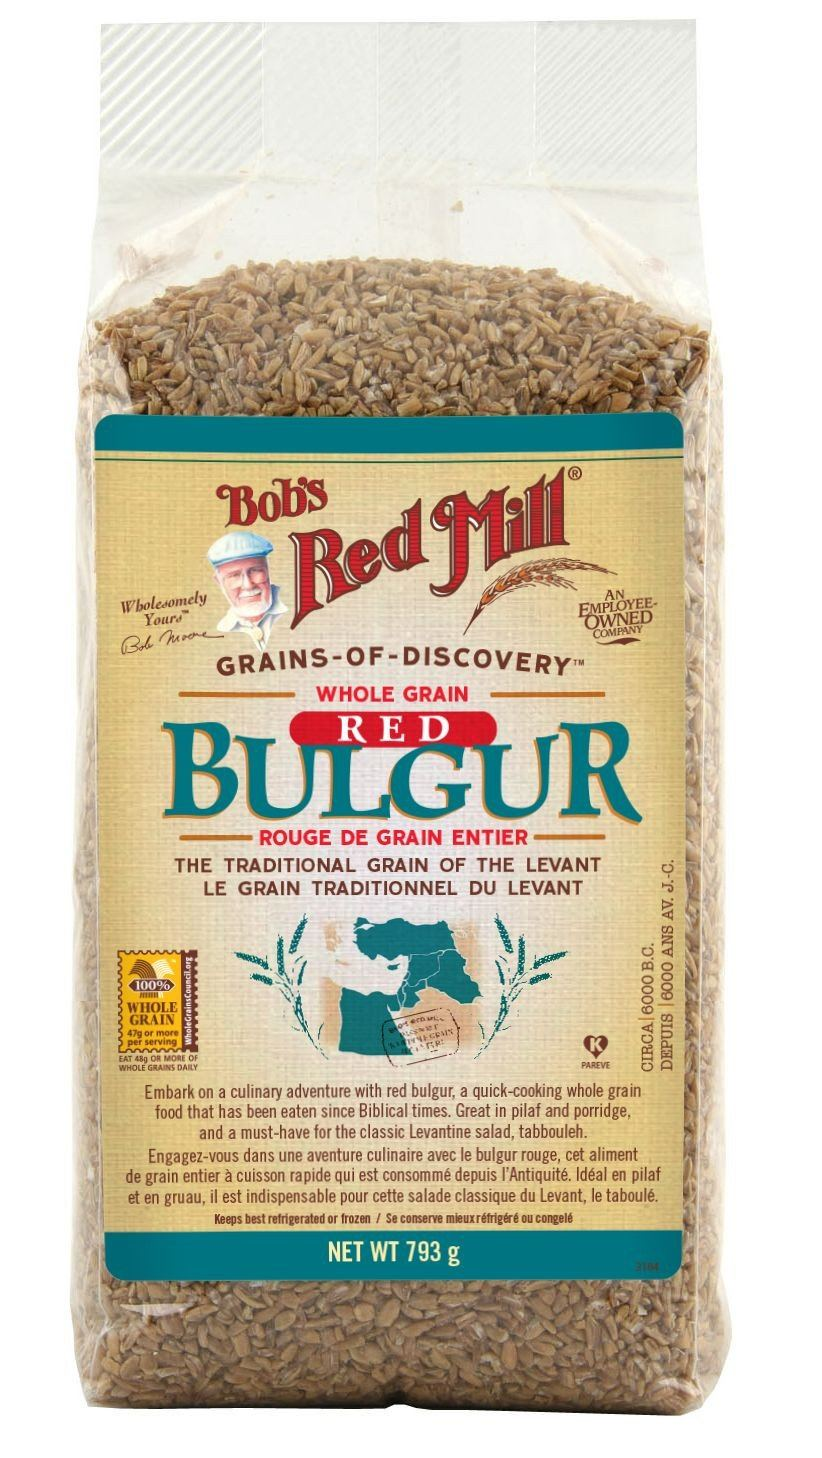 Food & Drink - Bob's Red Mill - Whole Grain Red Bulgur, 793g